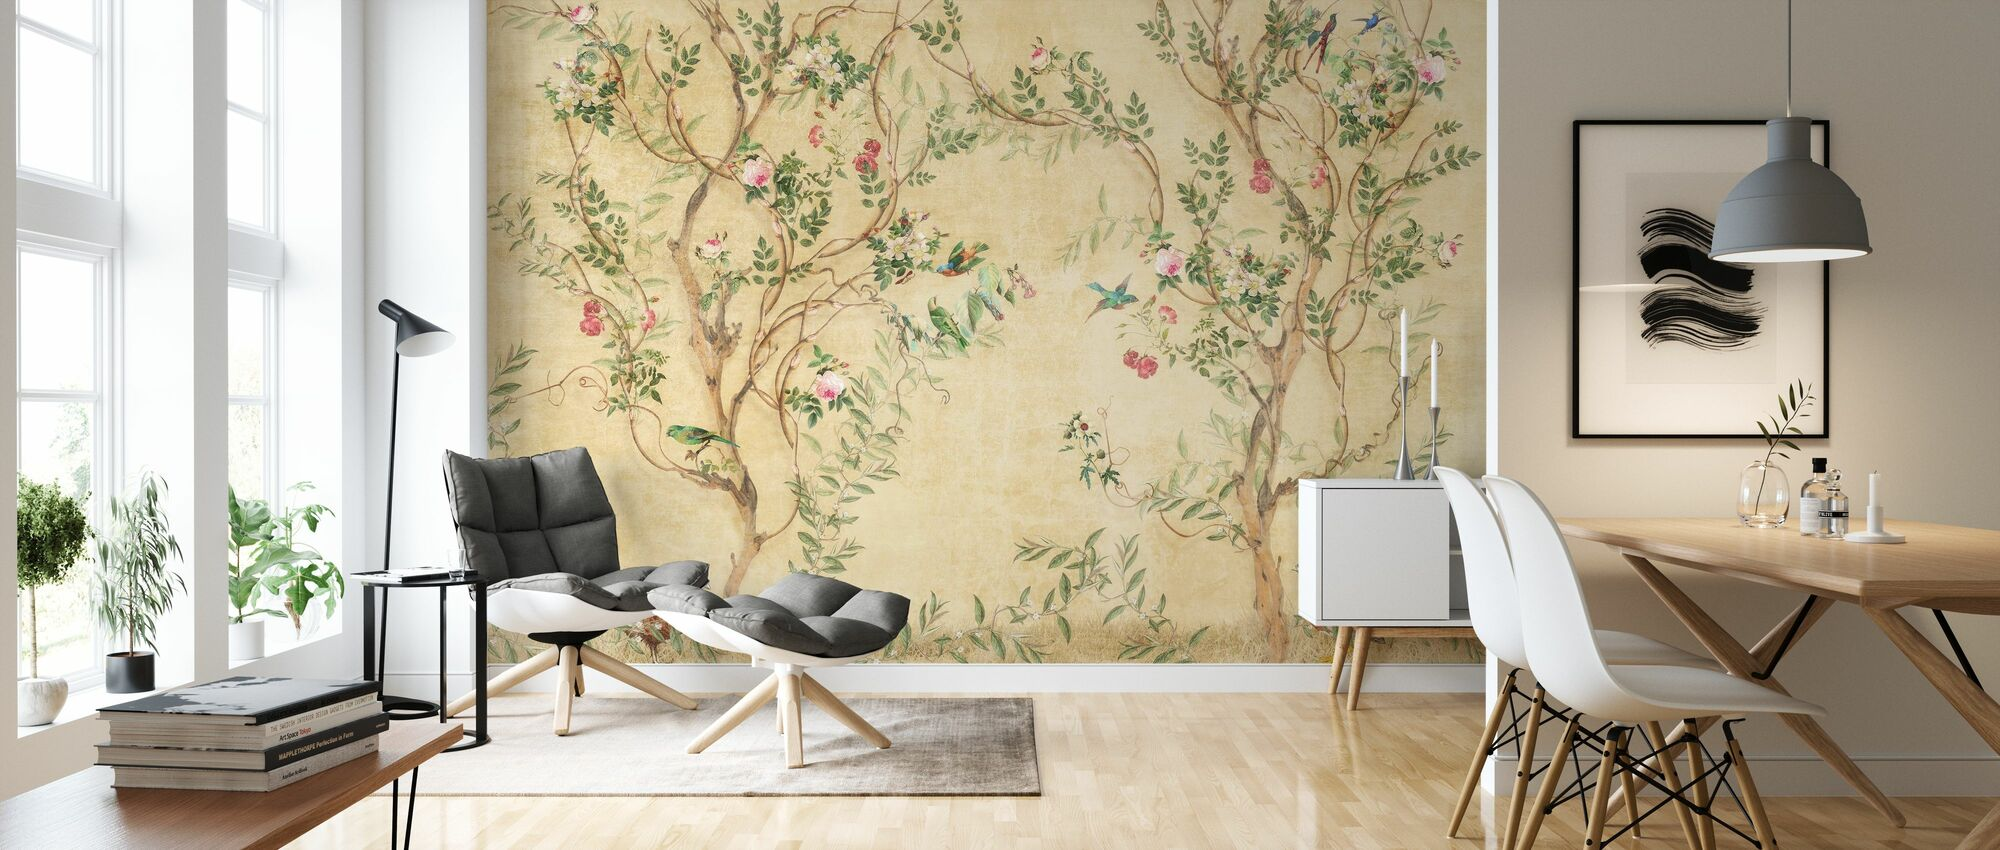 Pretty Birds in Branches - Wallpaper - Living Room